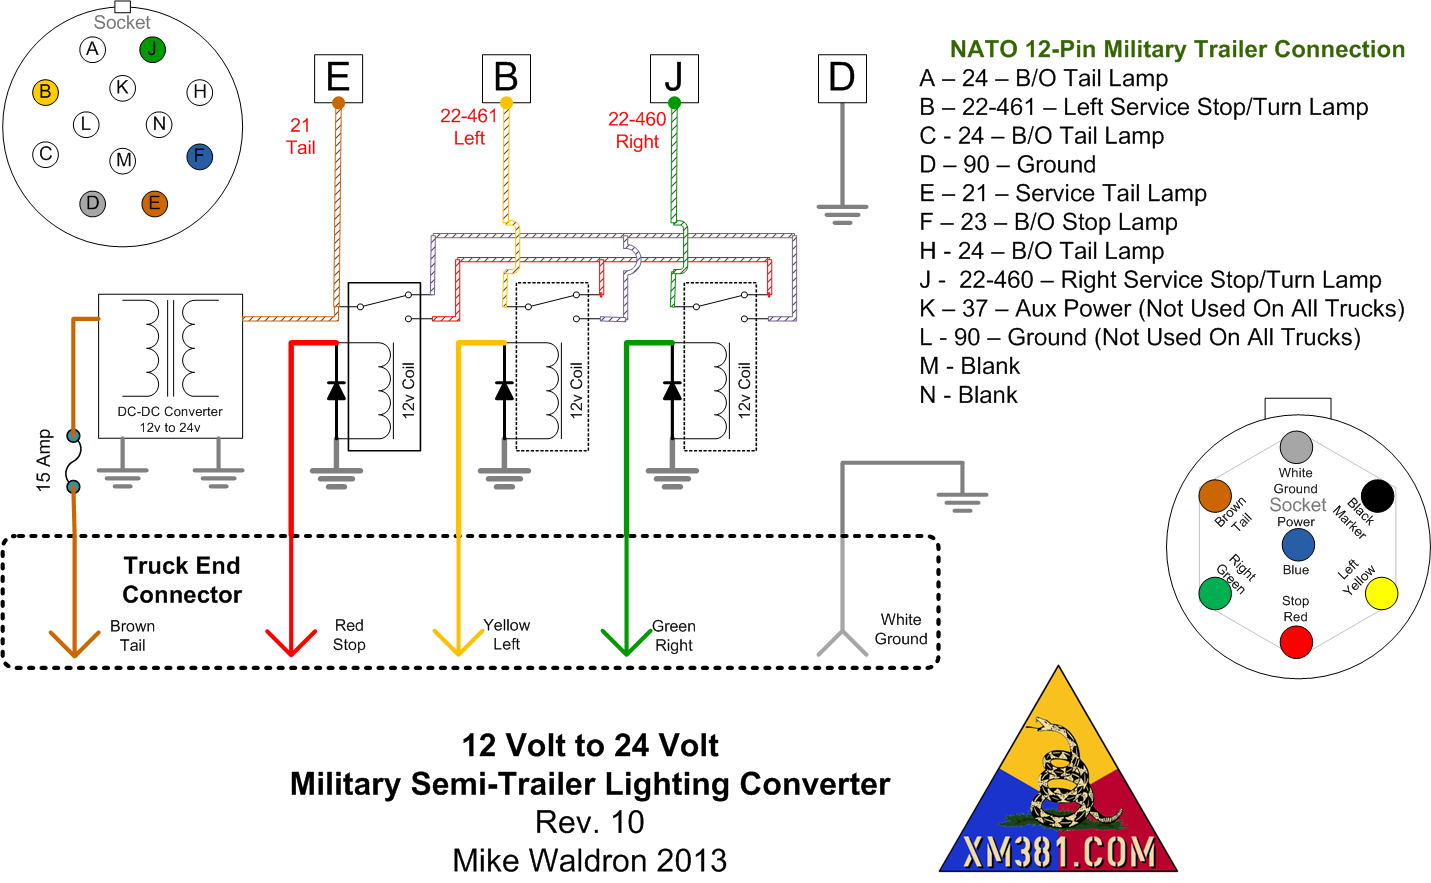 xm381 12 volt civllian truck to 24 volt military trailer lighting rh xm381 com 7-Way Trailer Wiring Diagram Trailer Wiring Harness Connectors